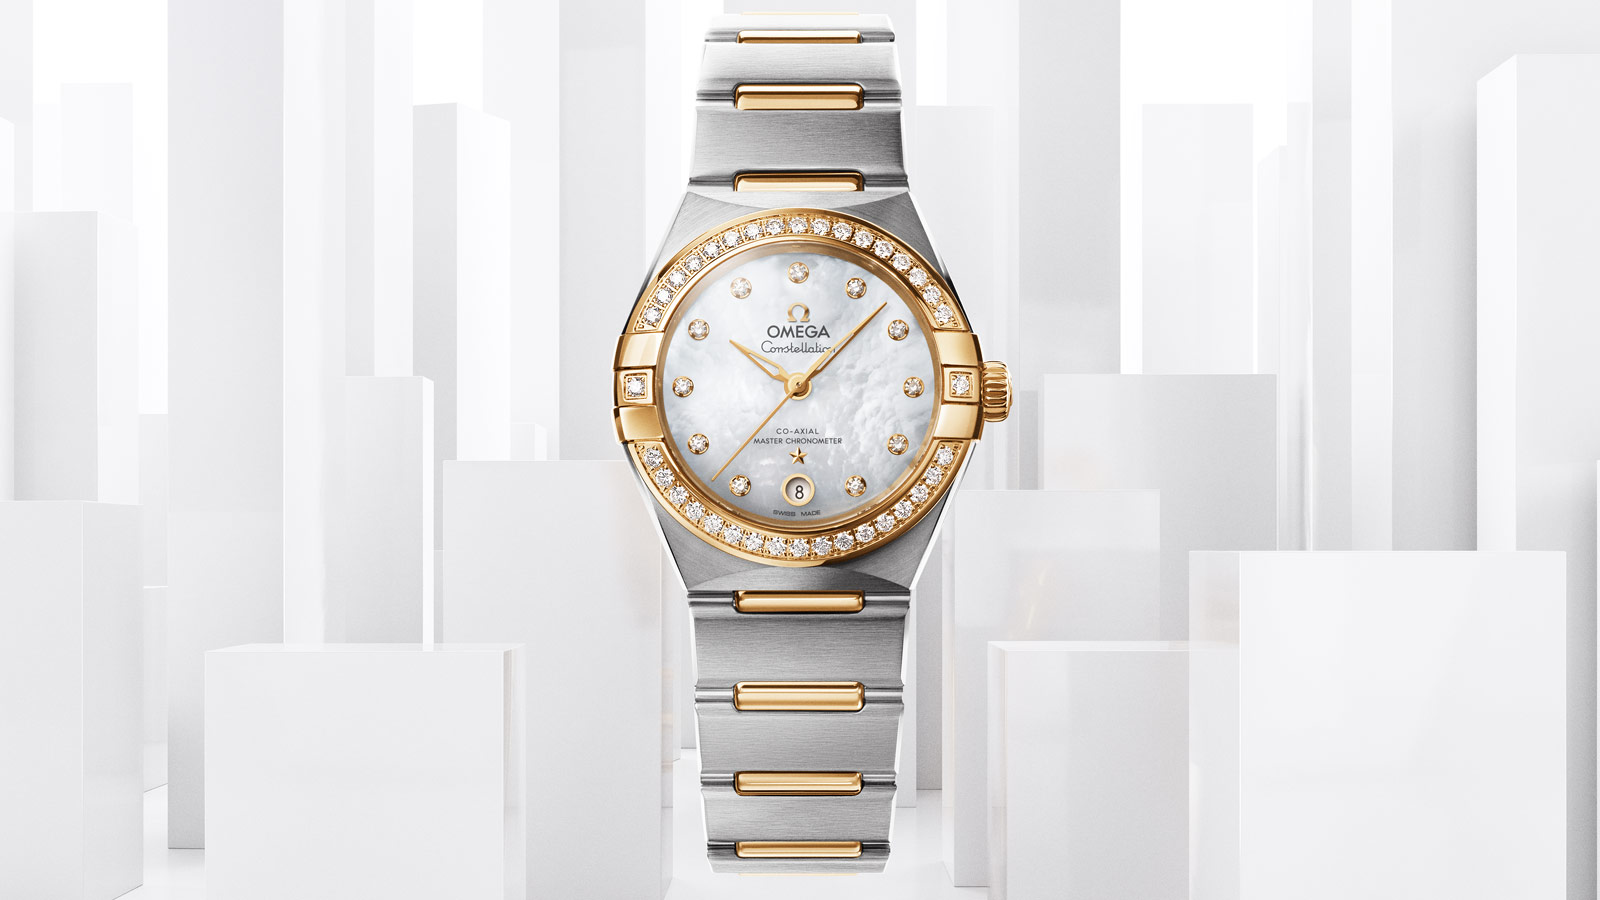 Constellation Constellation Constellation OMEGA Co‑Axial Master Chronometer 29 mm Referenz - 131.25.29.20.55.002